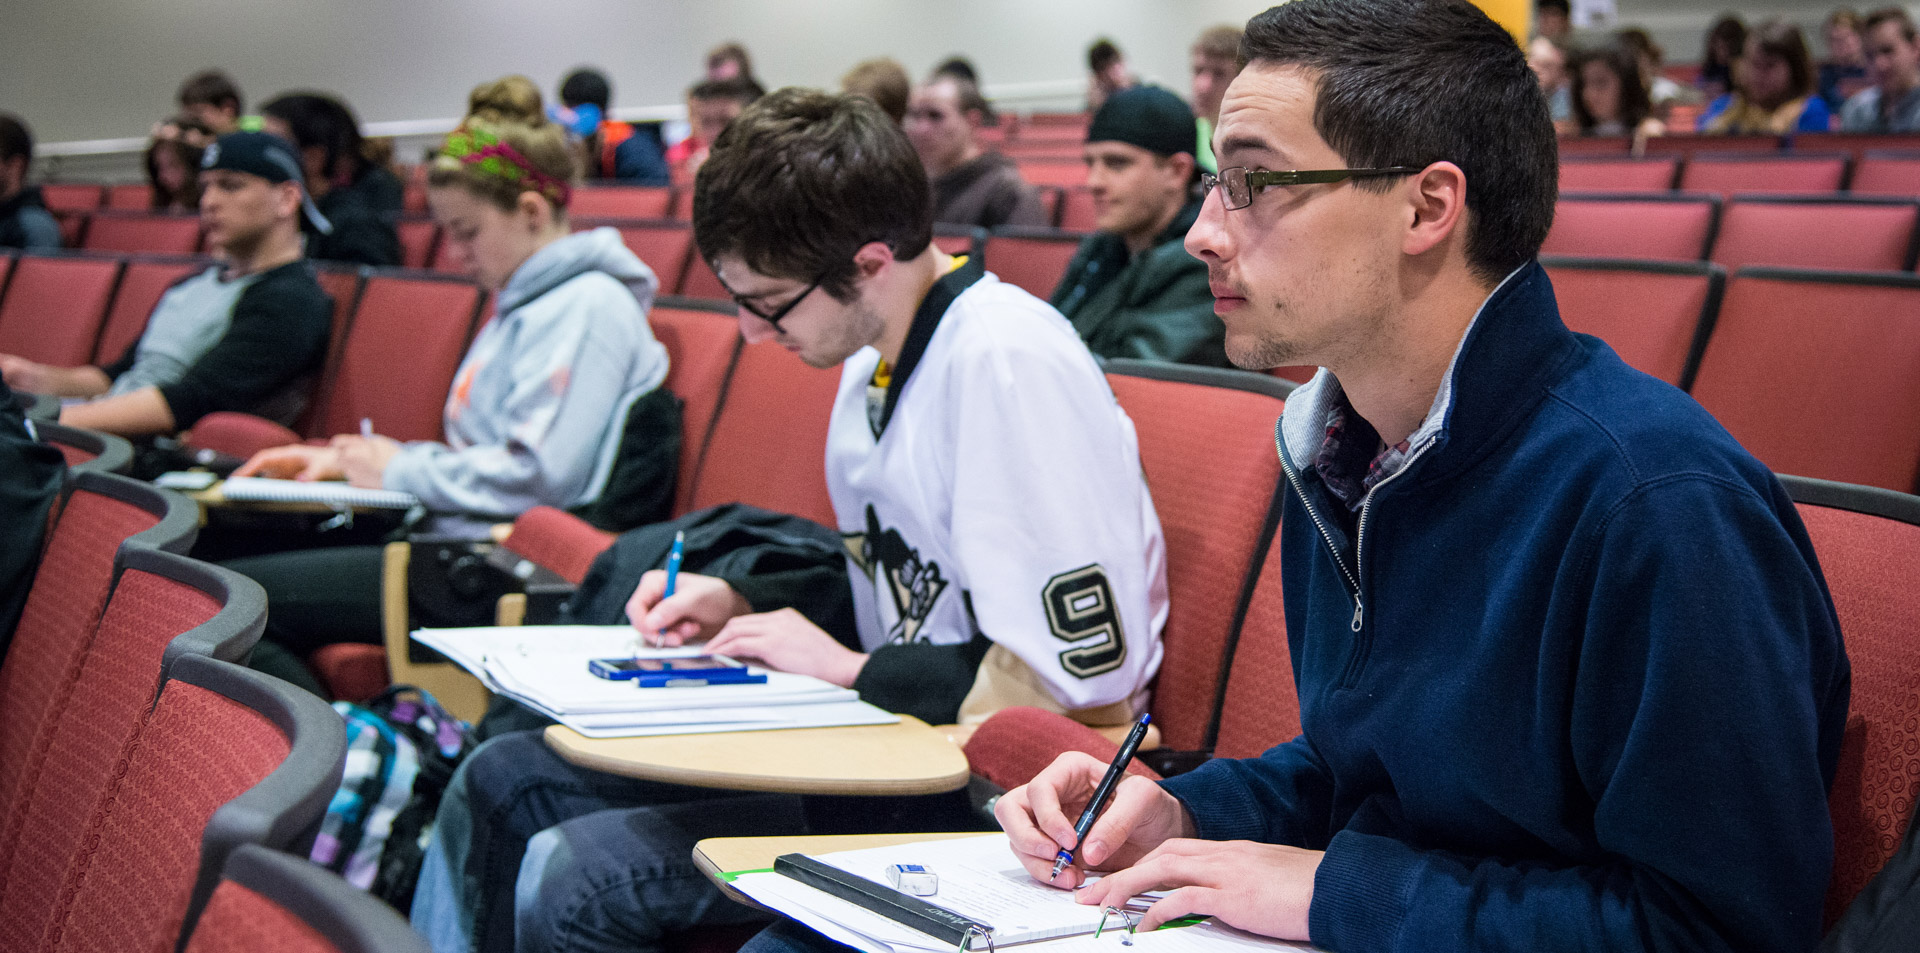 Students using armchair desks to take notes during a class in Reed Auditorium